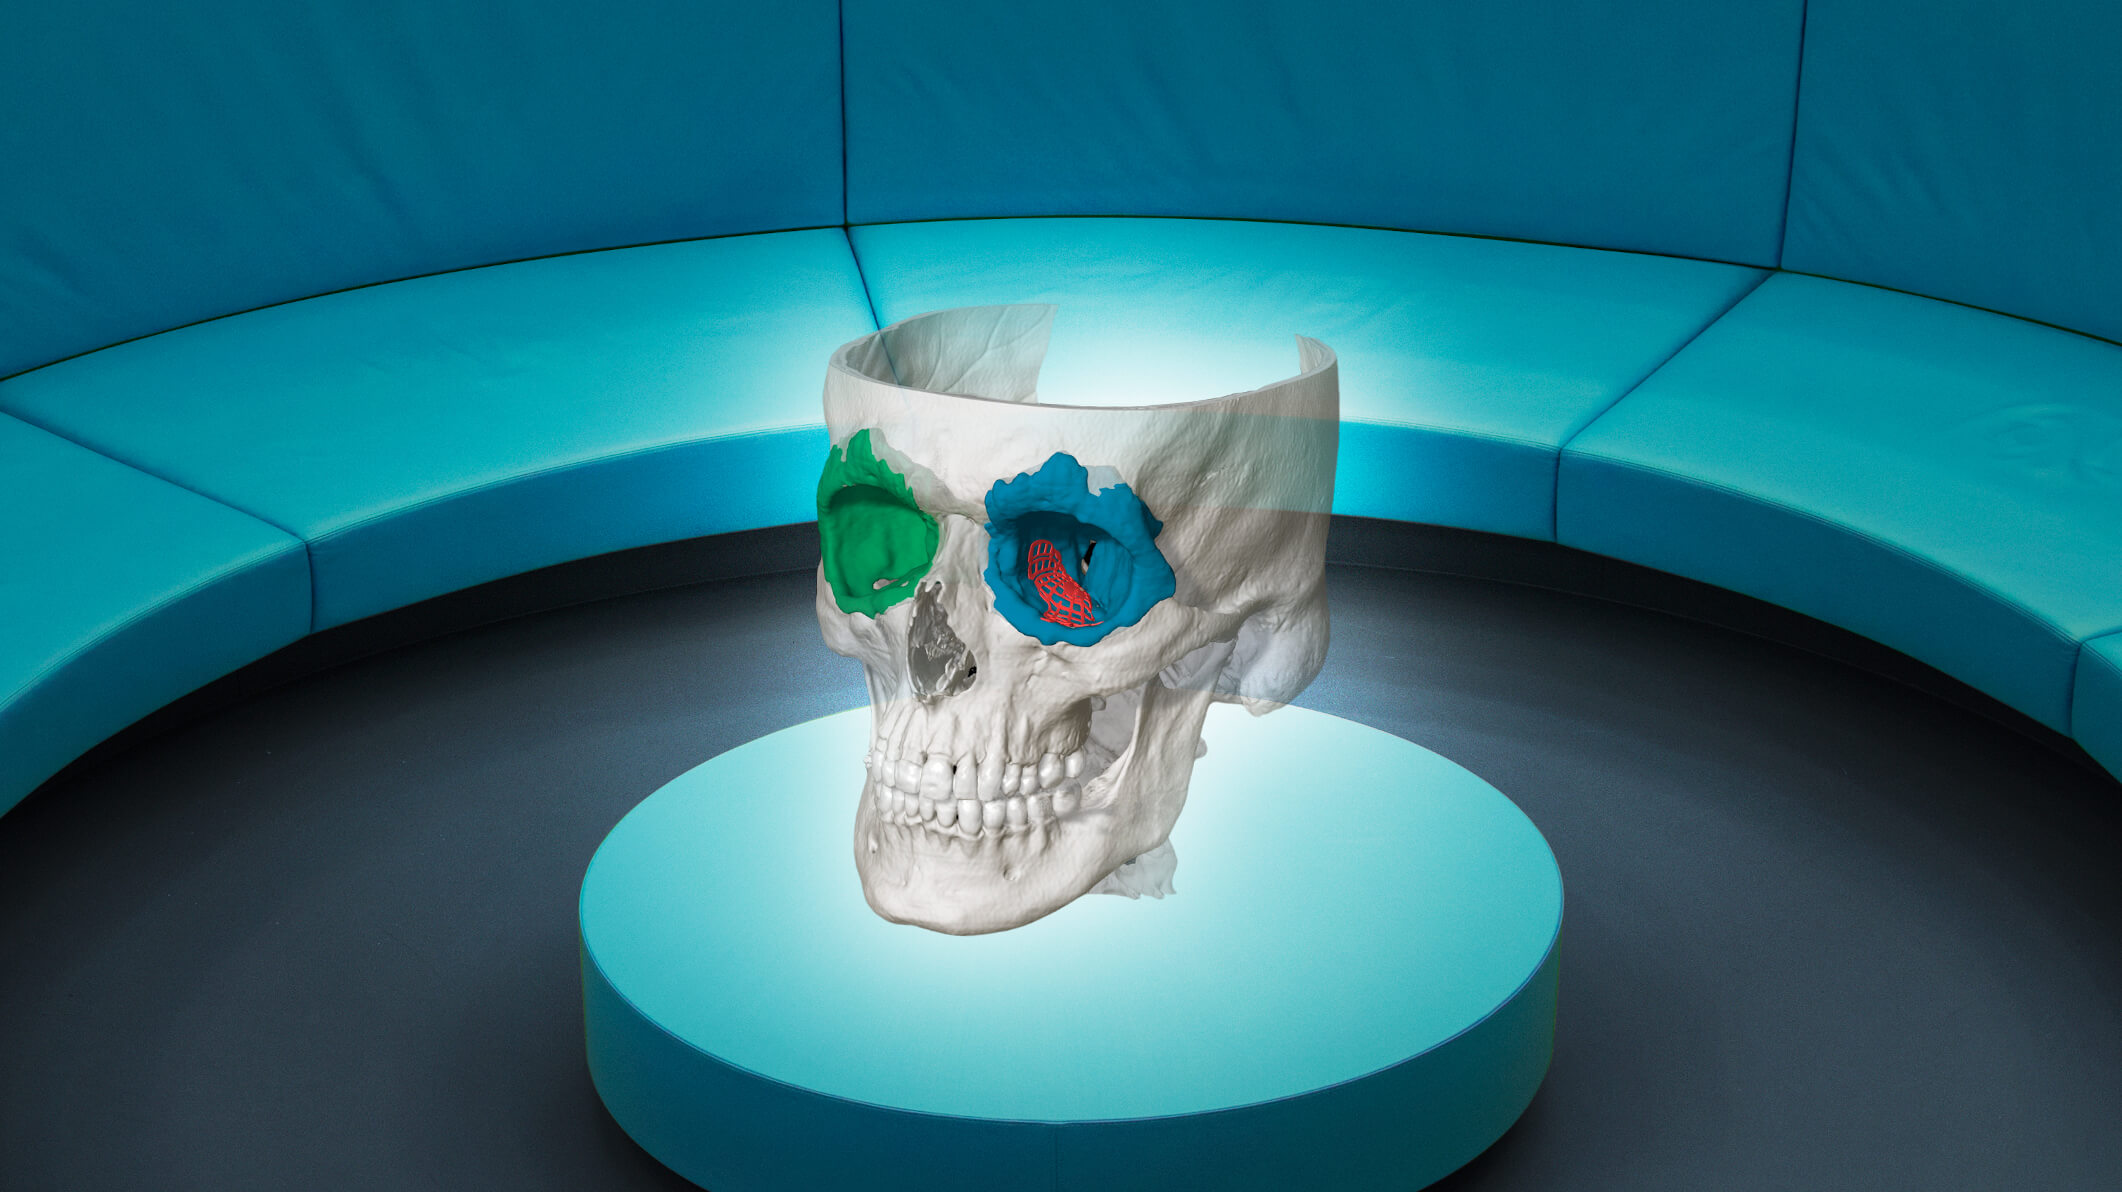 Augmented reality view of the planning of a craniomaxillofacial (CMF for short) case